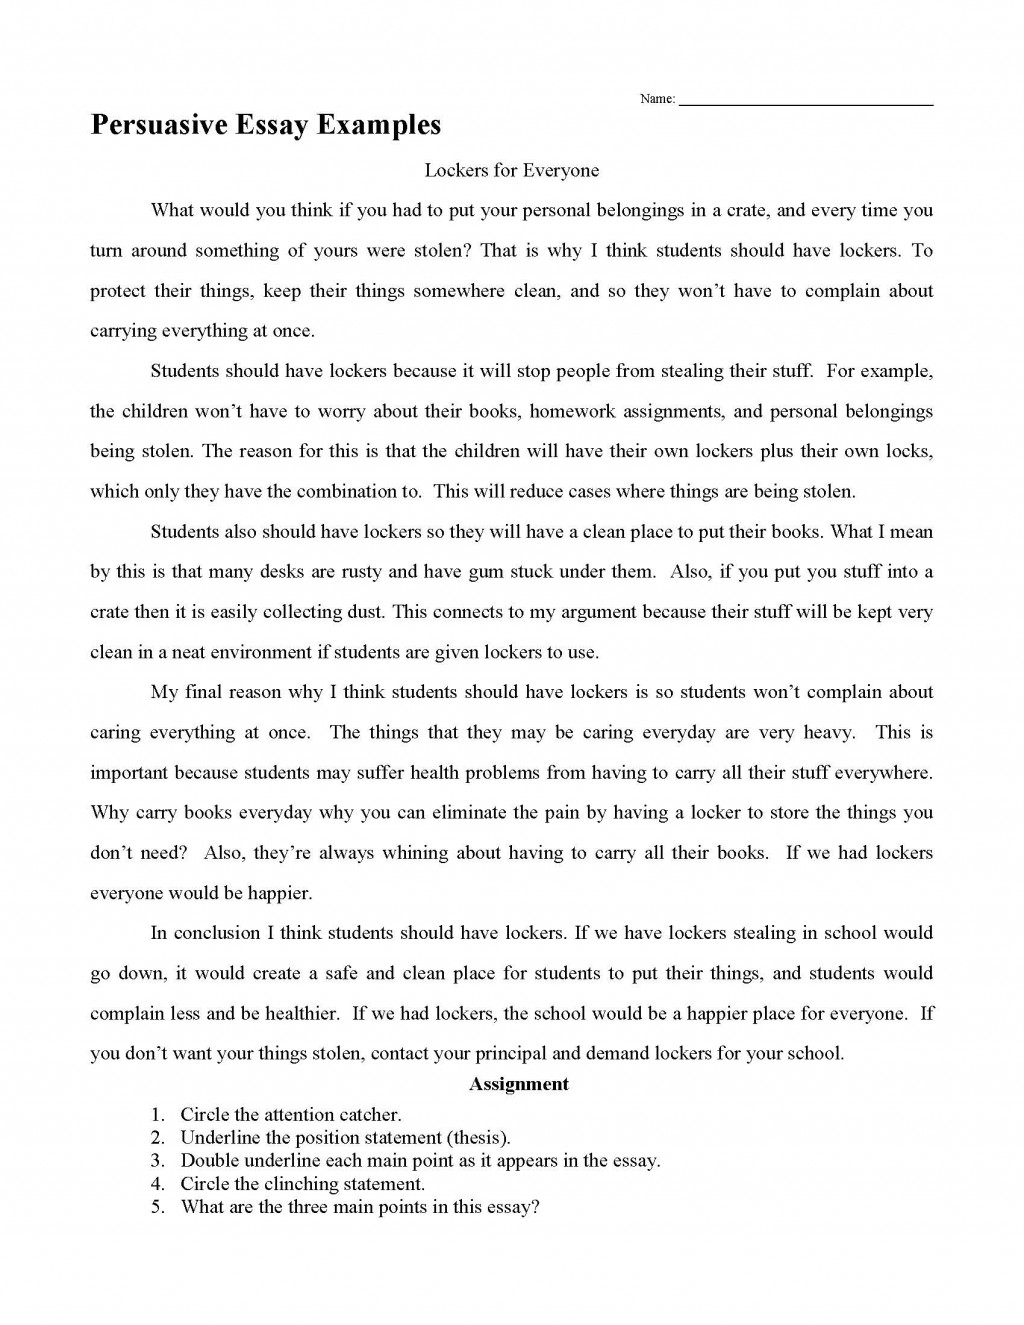 005 Persuasive Essay Examples Good Research Paper Topics Medical Unique Field Related Papers Large